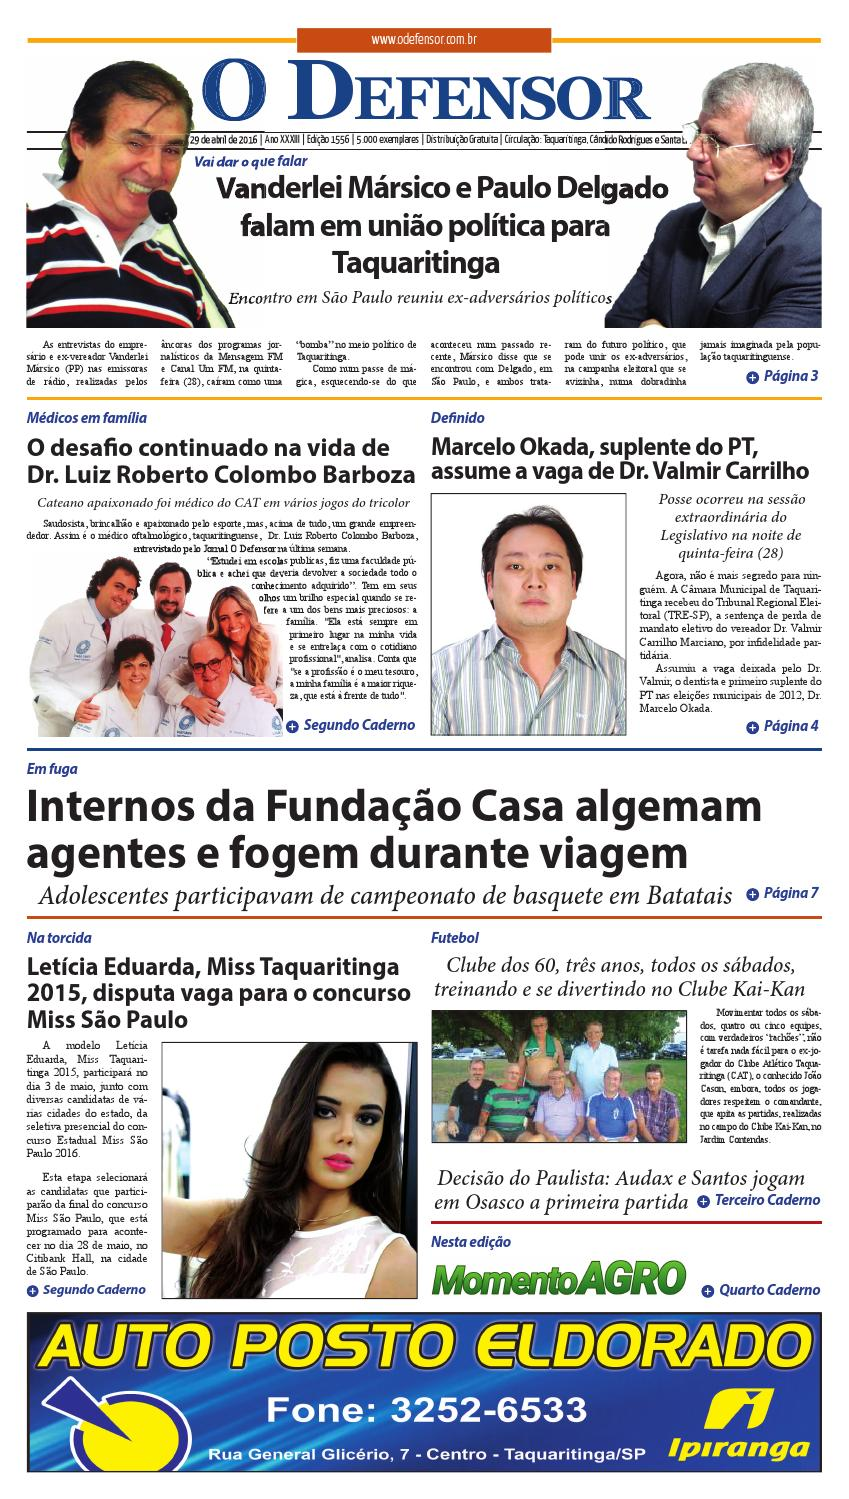 Jornal O Defensor 29 de abril de 2016 by gabriel baglioti - issuu e4212efed0892